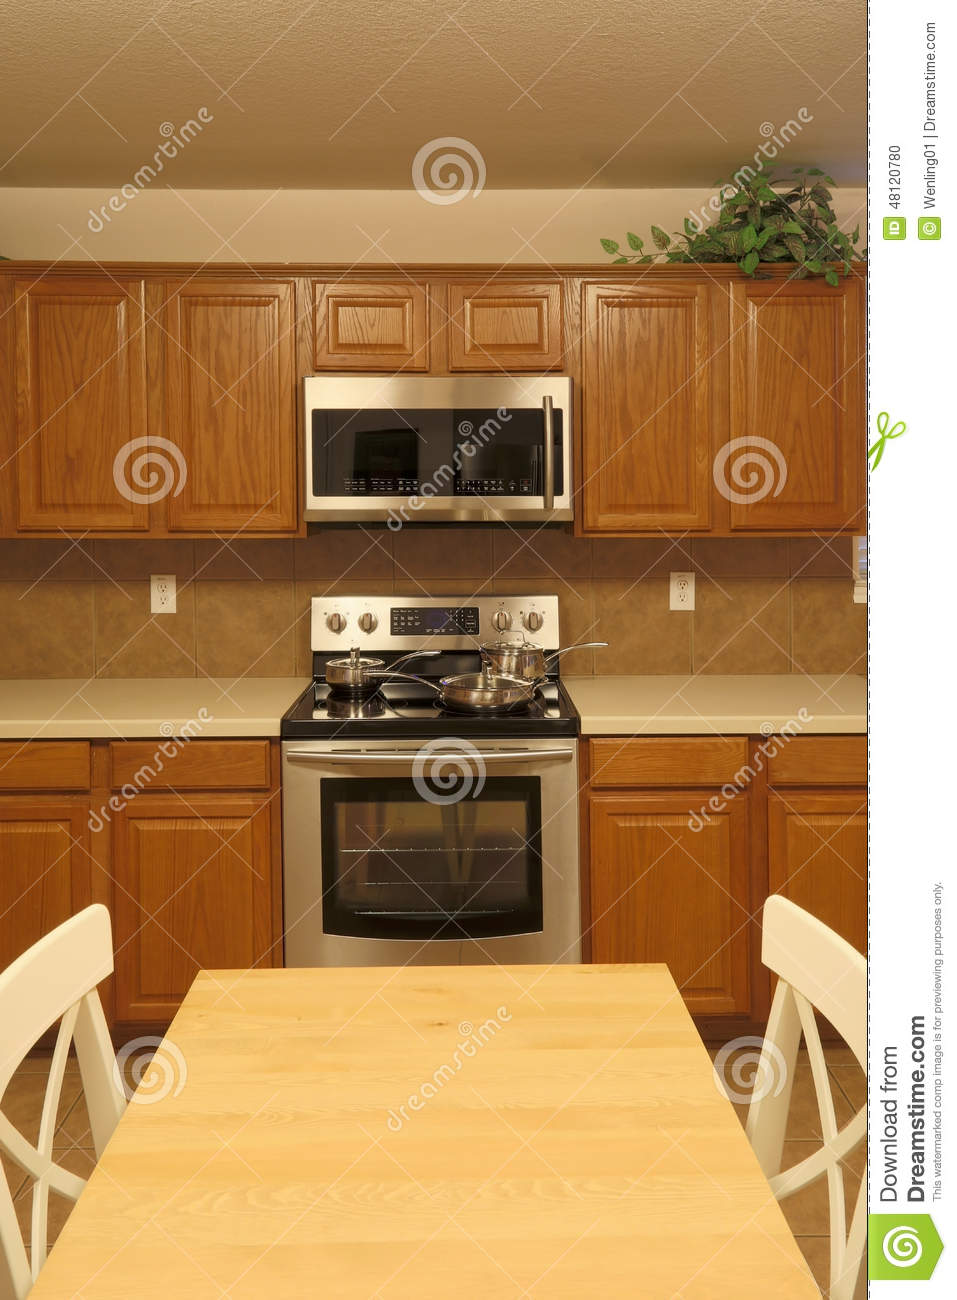 Modern Kitchen Background modern kitchen background stock photo - image: 48120780